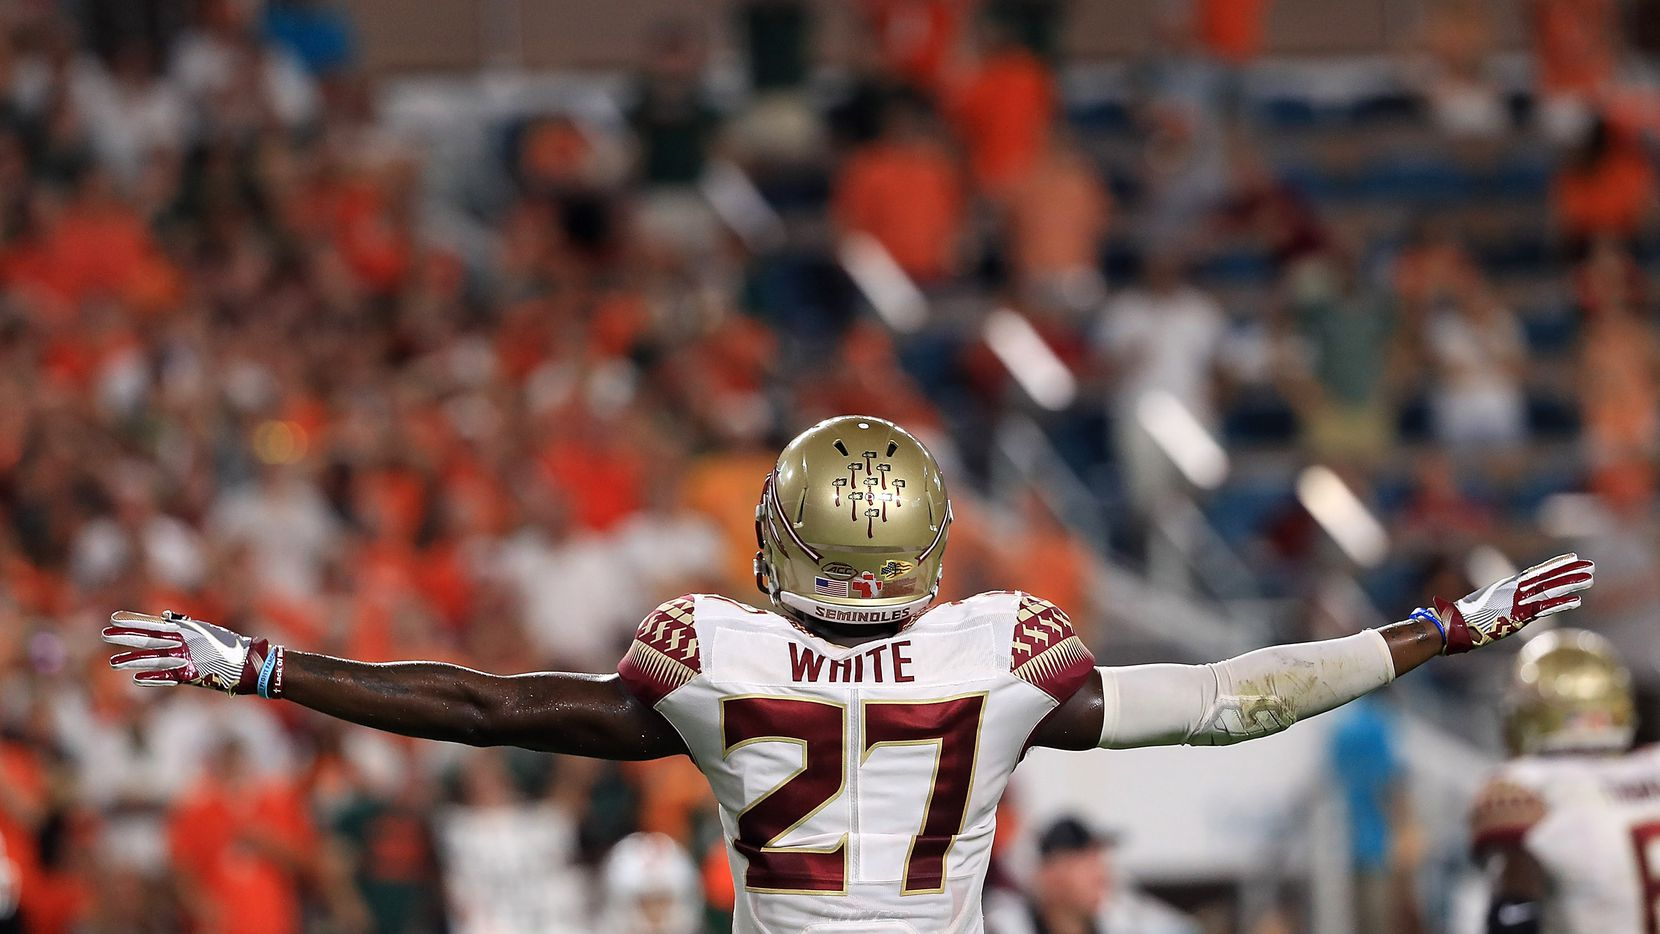 MIAMI GARDENS, FL - OCTOBER 08: Marquez White #27 of the Florida State Seminoles reacts to a play during a game  against the Miami Hurricanes at Hard Rock Stadium on October 8, 2016 in Miami Gardens, Florida.  (Photo by Mike Ehrmann/Getty Images)